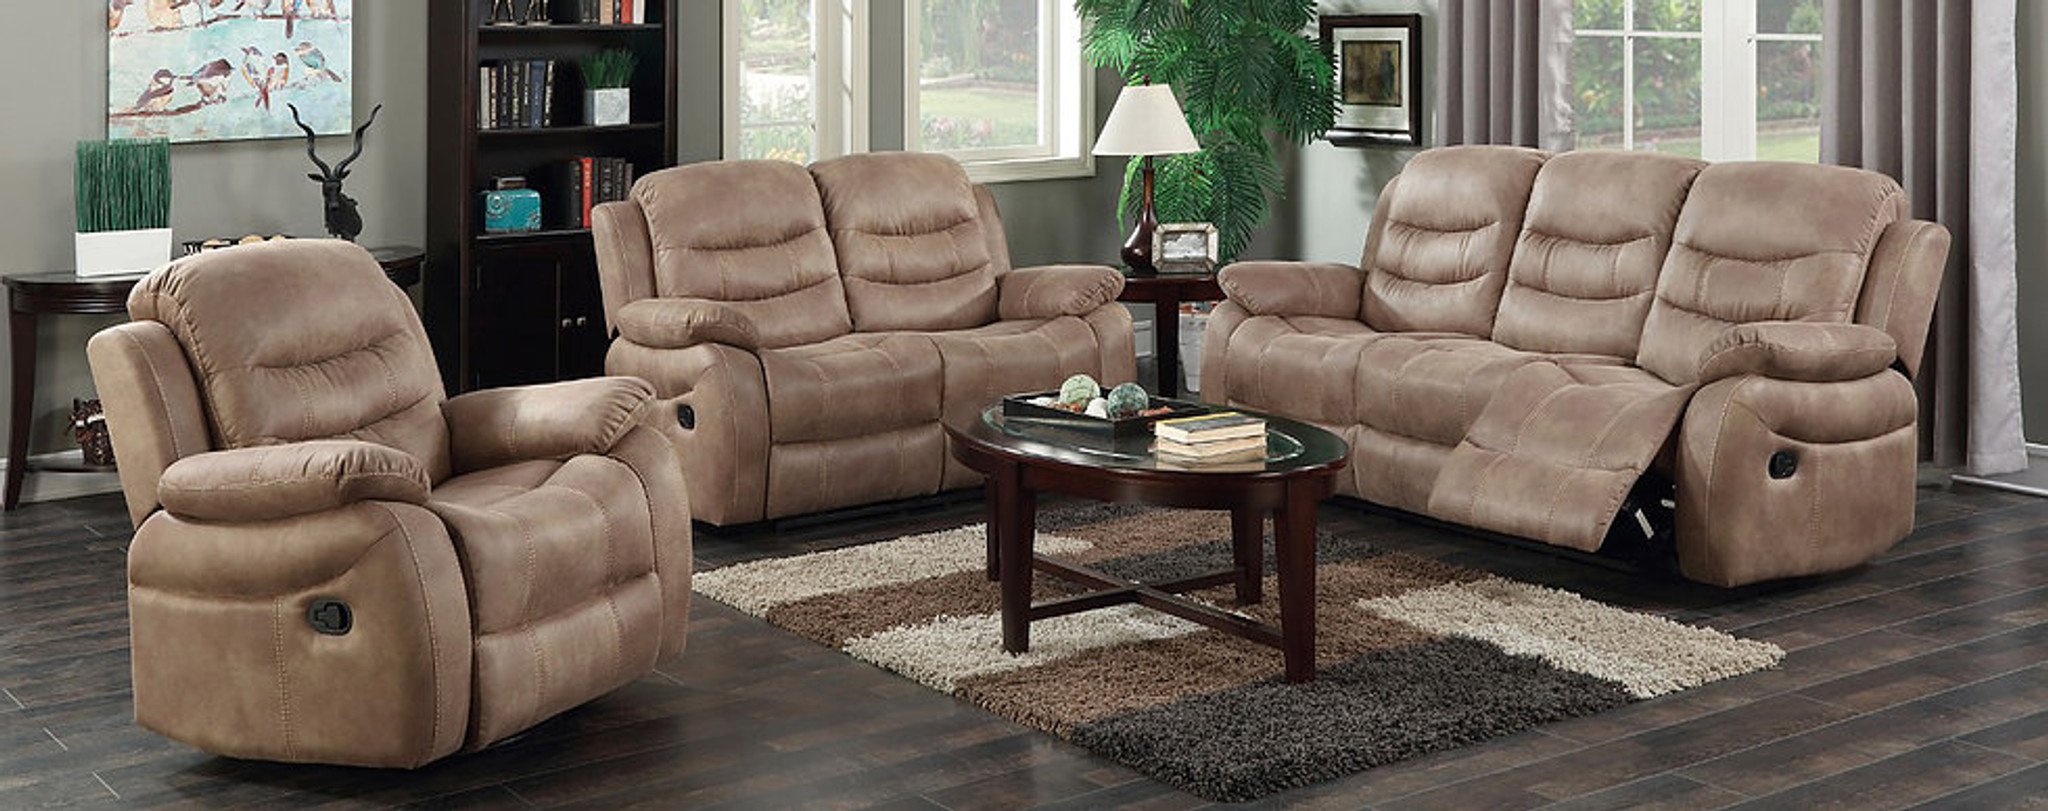 2PCS YURI BEIGE RECLINING SOFA AND LOVESEAT SET S8265